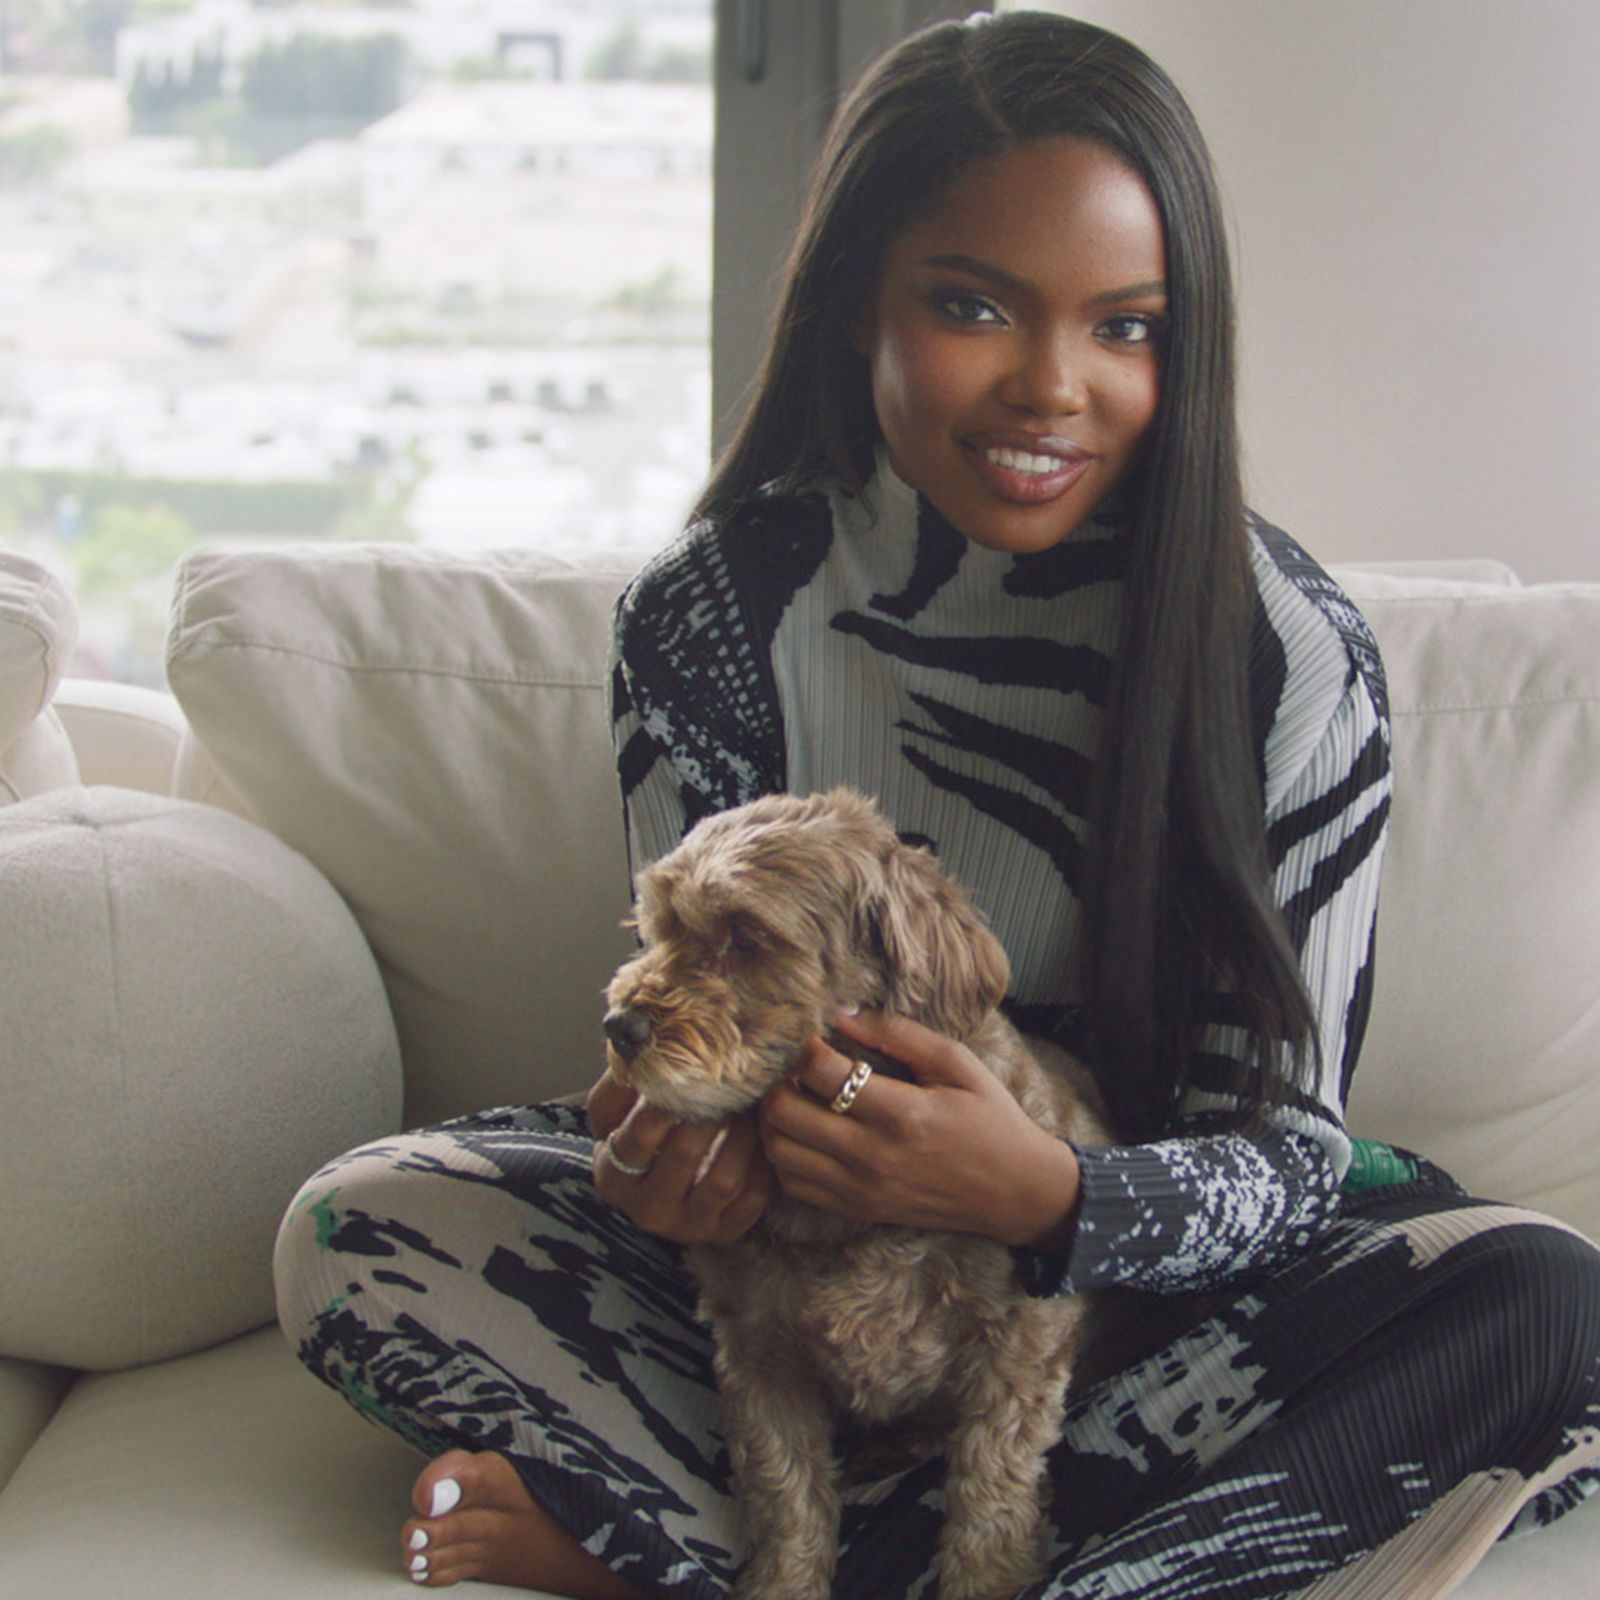 Join Ryan Destiny at home for her Perfect Night In